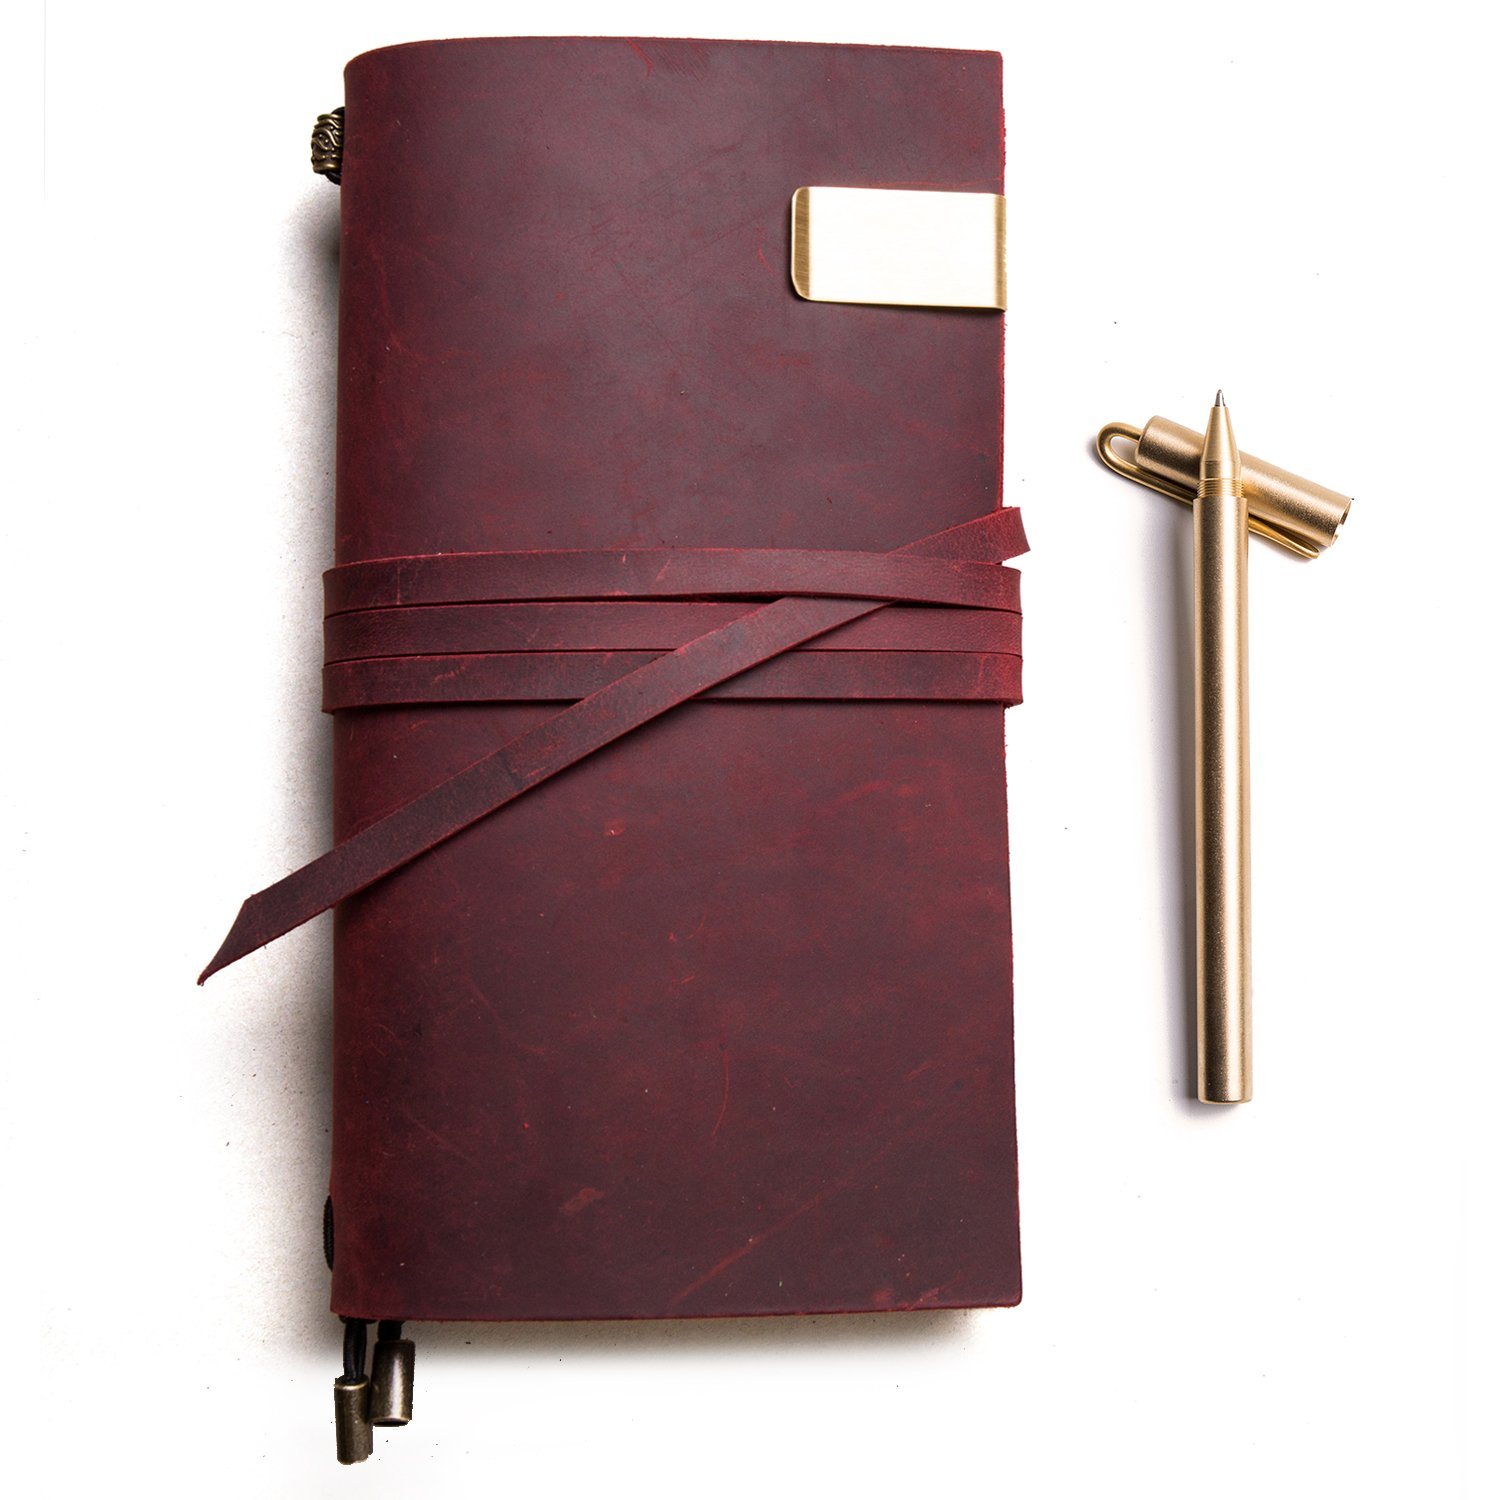 Genuine Leather Travelers Notebook + Copper Pen, Handmade Journals for Men and Women Refillable Planner,Travel to Write in,Lined Paper, Retro Accessories (Red, Standard Size)